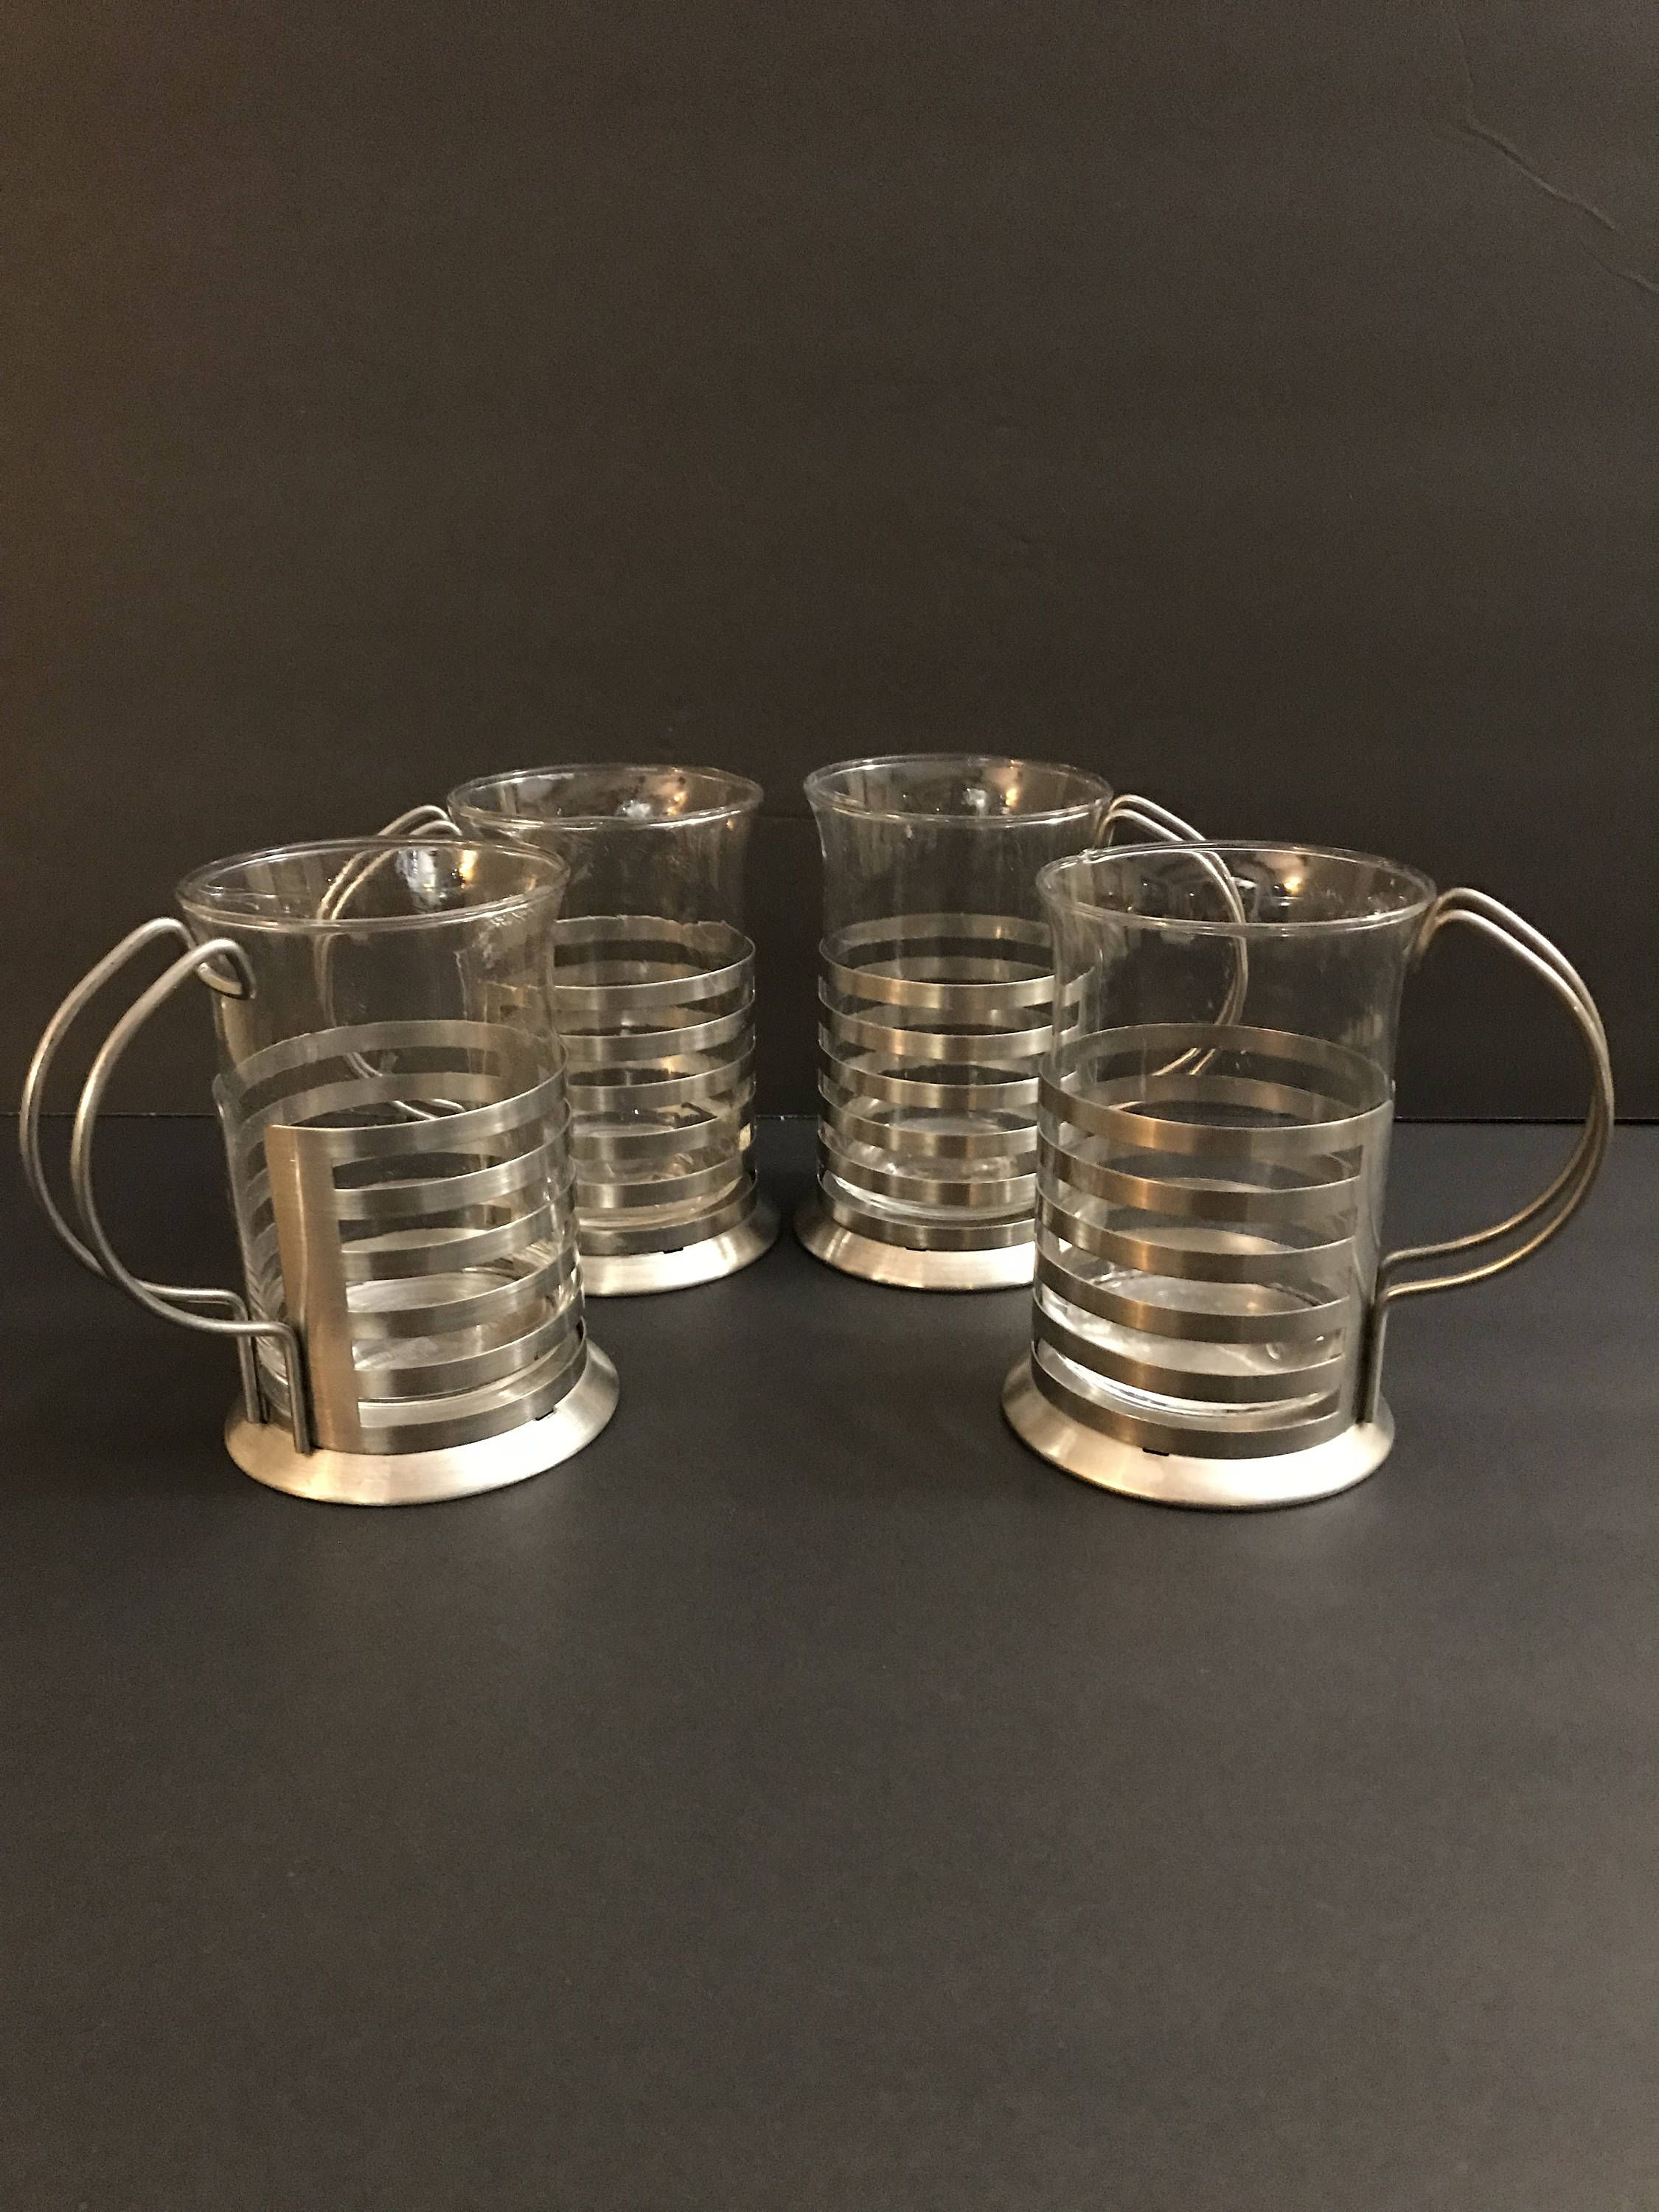 Vintage Yet Modern Glass Cup In Holder Aluminum Chrome Metal Holders Blown Glass Cups Gift Soniacollectibles By Glass Cup Modern Glass Vintage Glasses